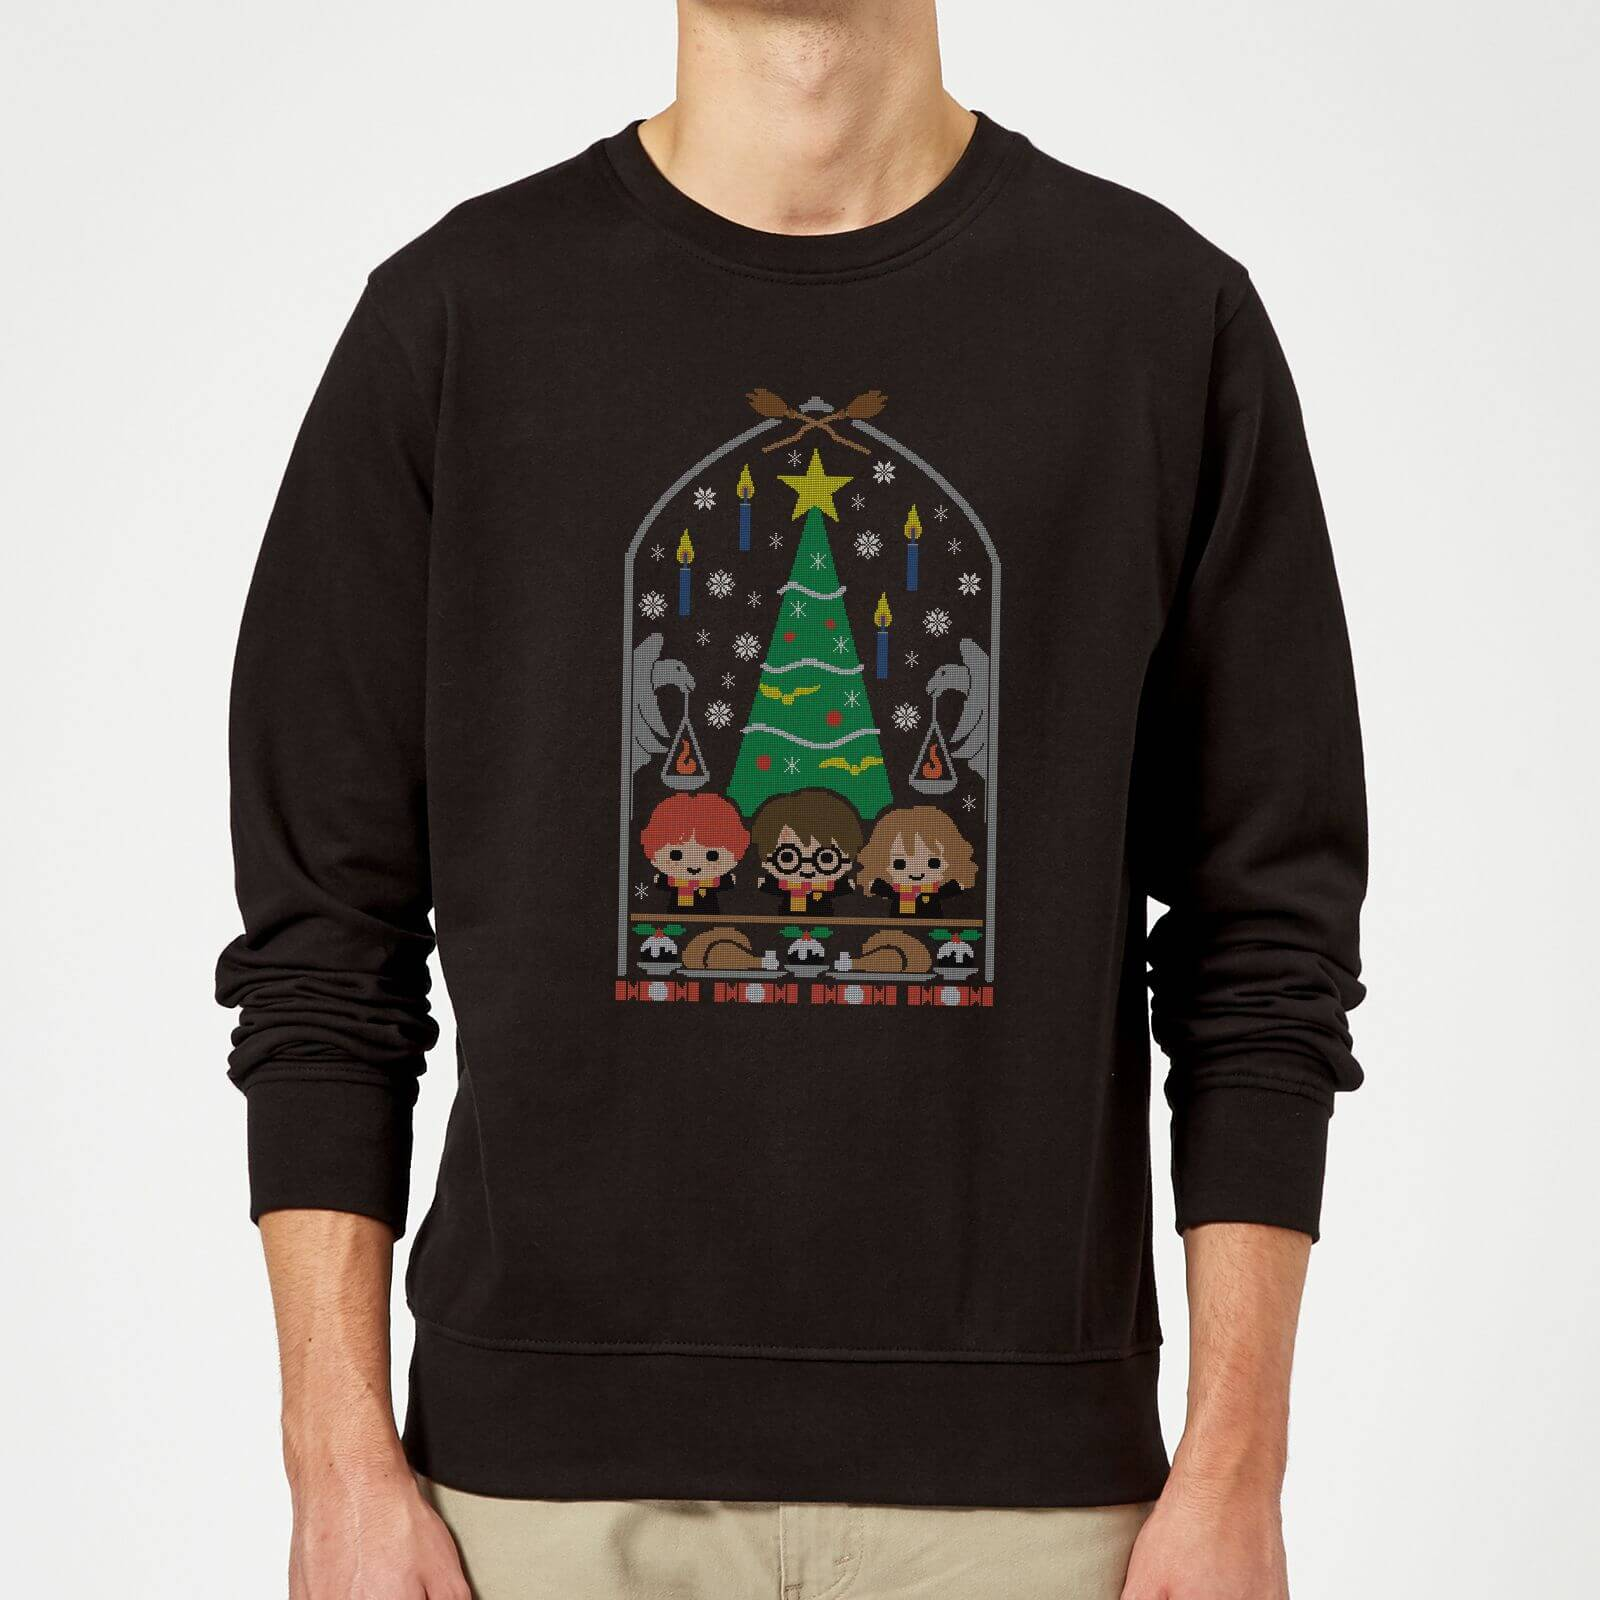 Harry Potter Hogwarts Tree Christmas Sweatshirt - Black - XXL - Negro de Harry Potter